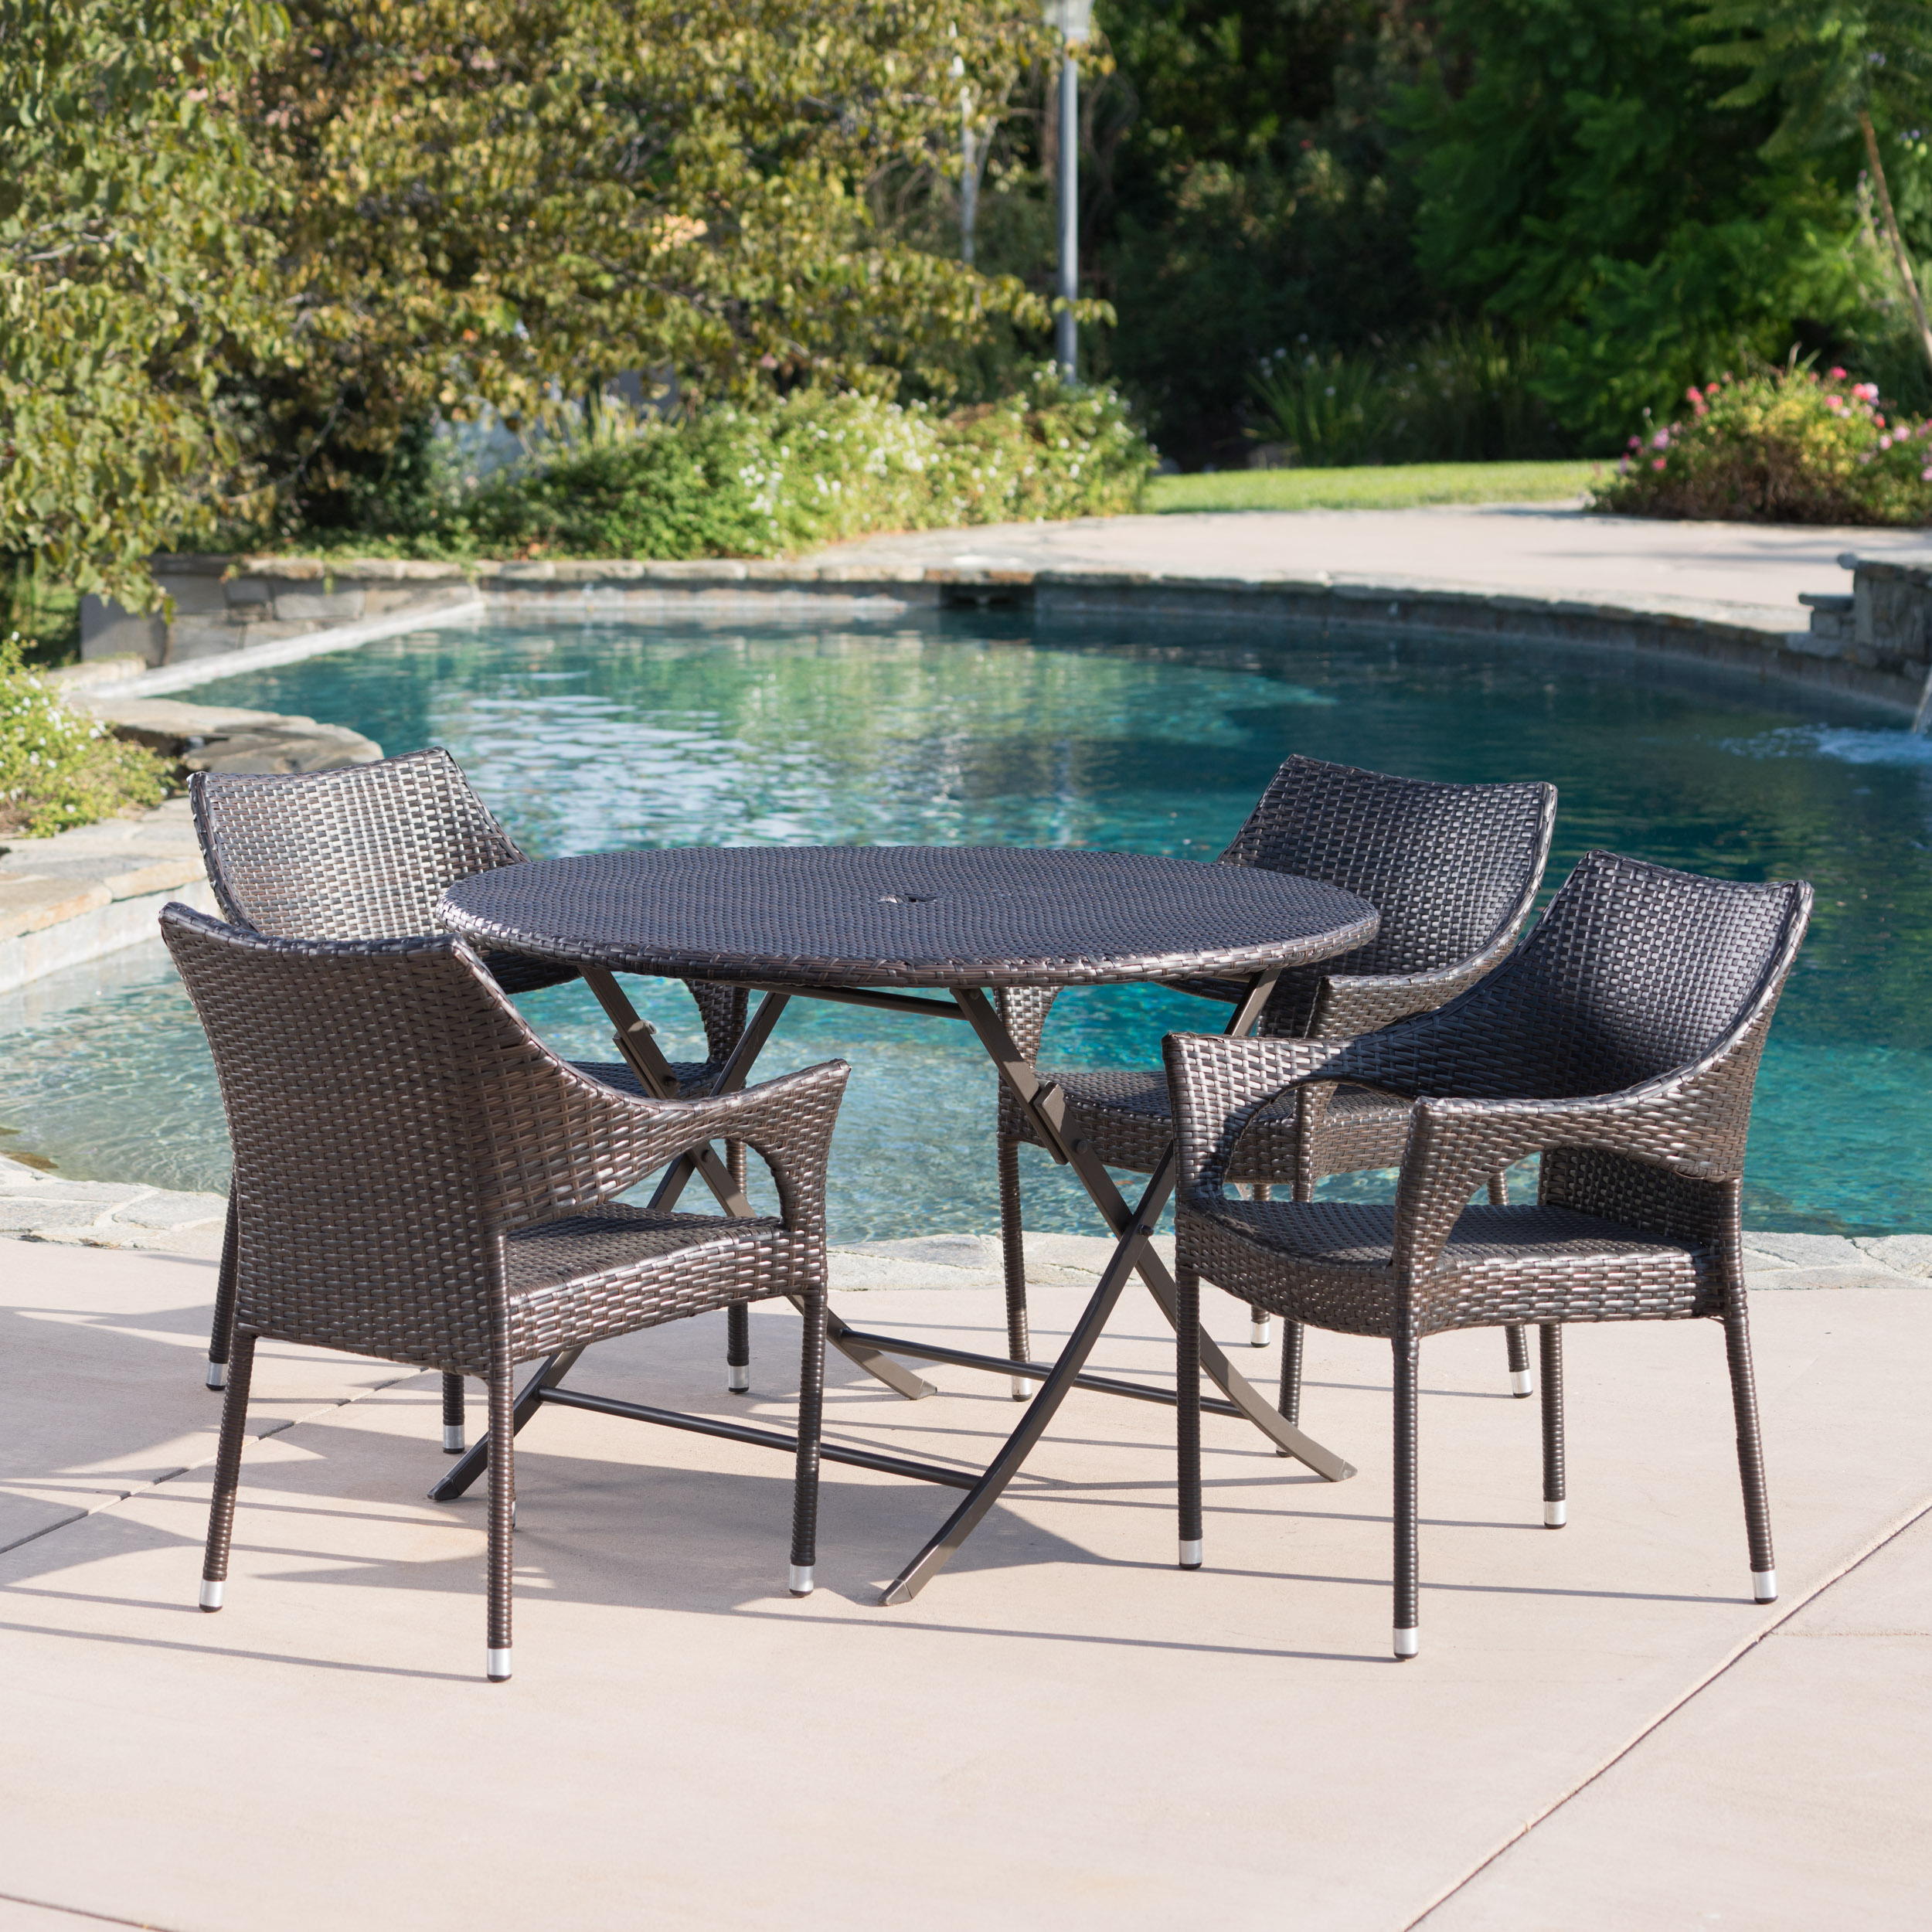 Outdoor 5 Piece Wicker Dining Set with Foldable Table and Stacking Chairs,Multibrown